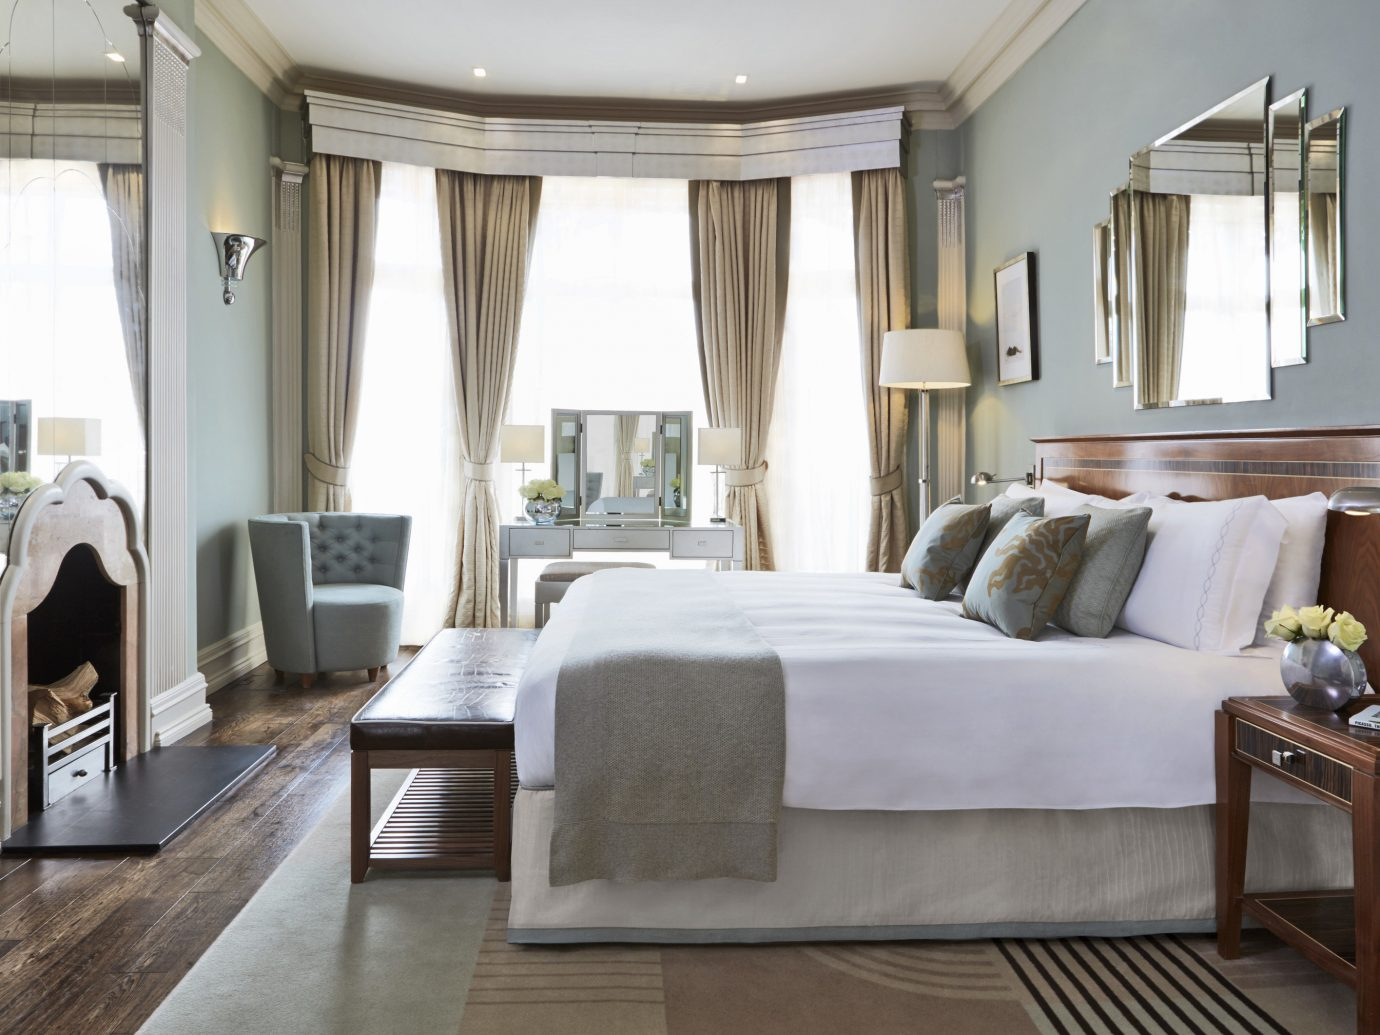 Boutique Hotels London Romantic Hotels indoor floor window room wall sofa Living property living room estate home interior design Suite furniture mansion real estate hotel condominium Bedroom Design window covering Villa Modern wood